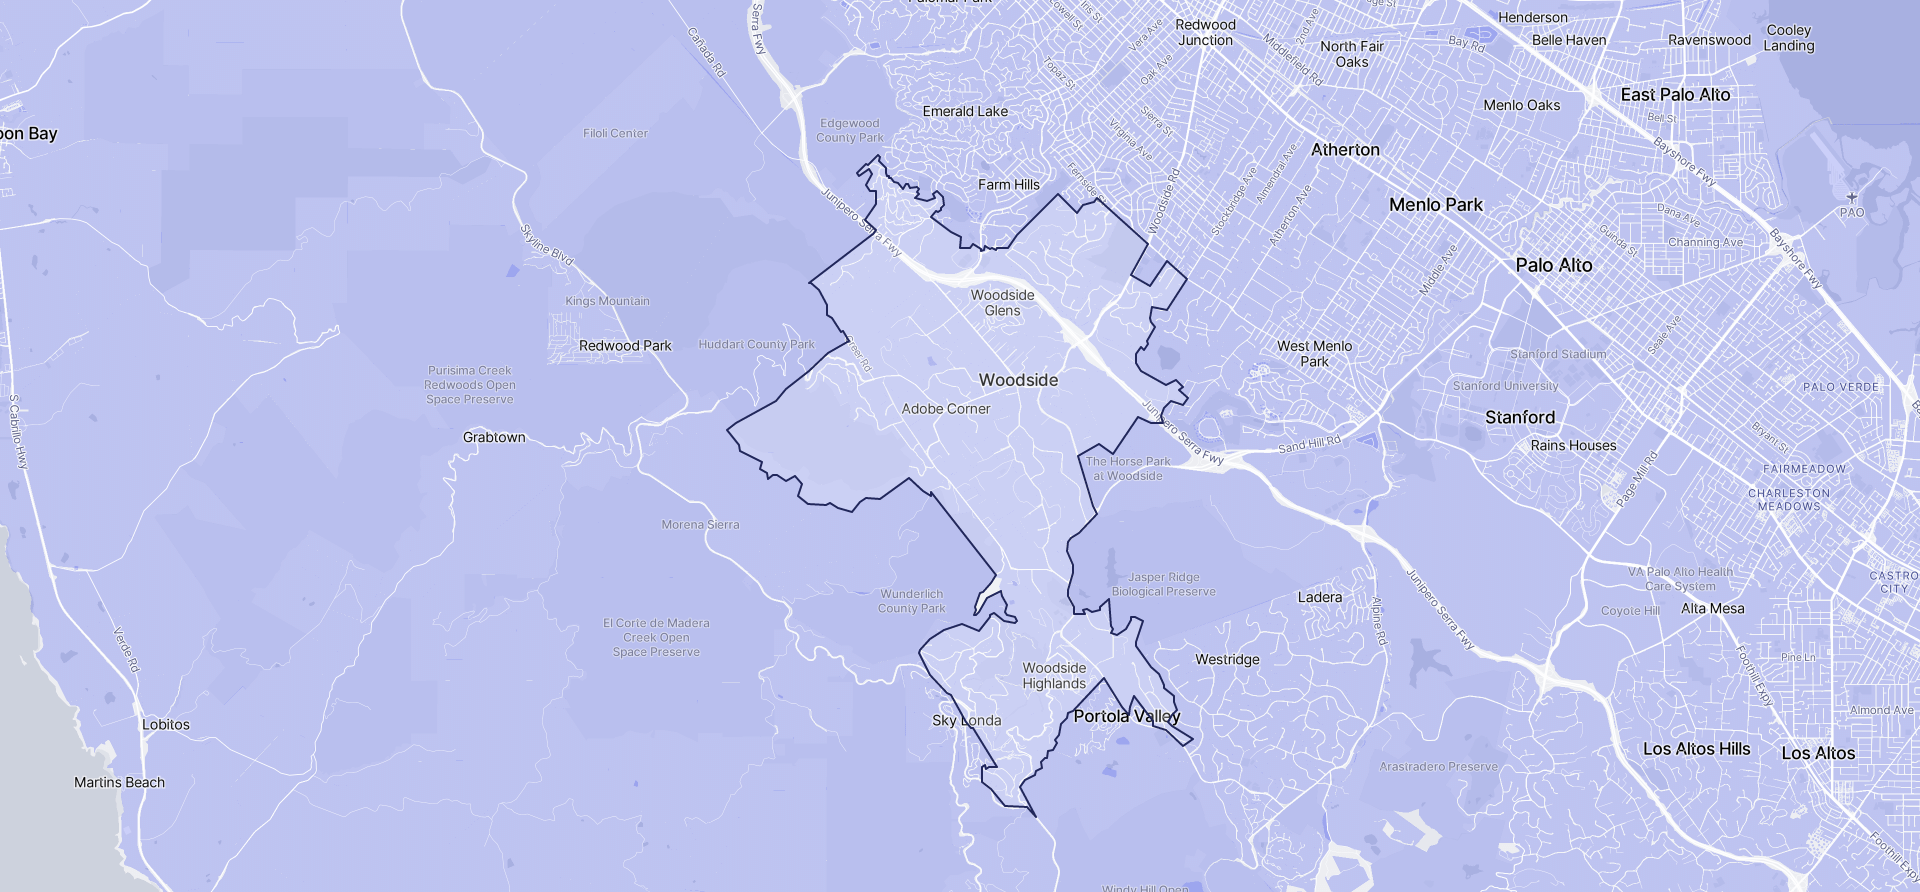 Image of Woodside boundaries on a map.